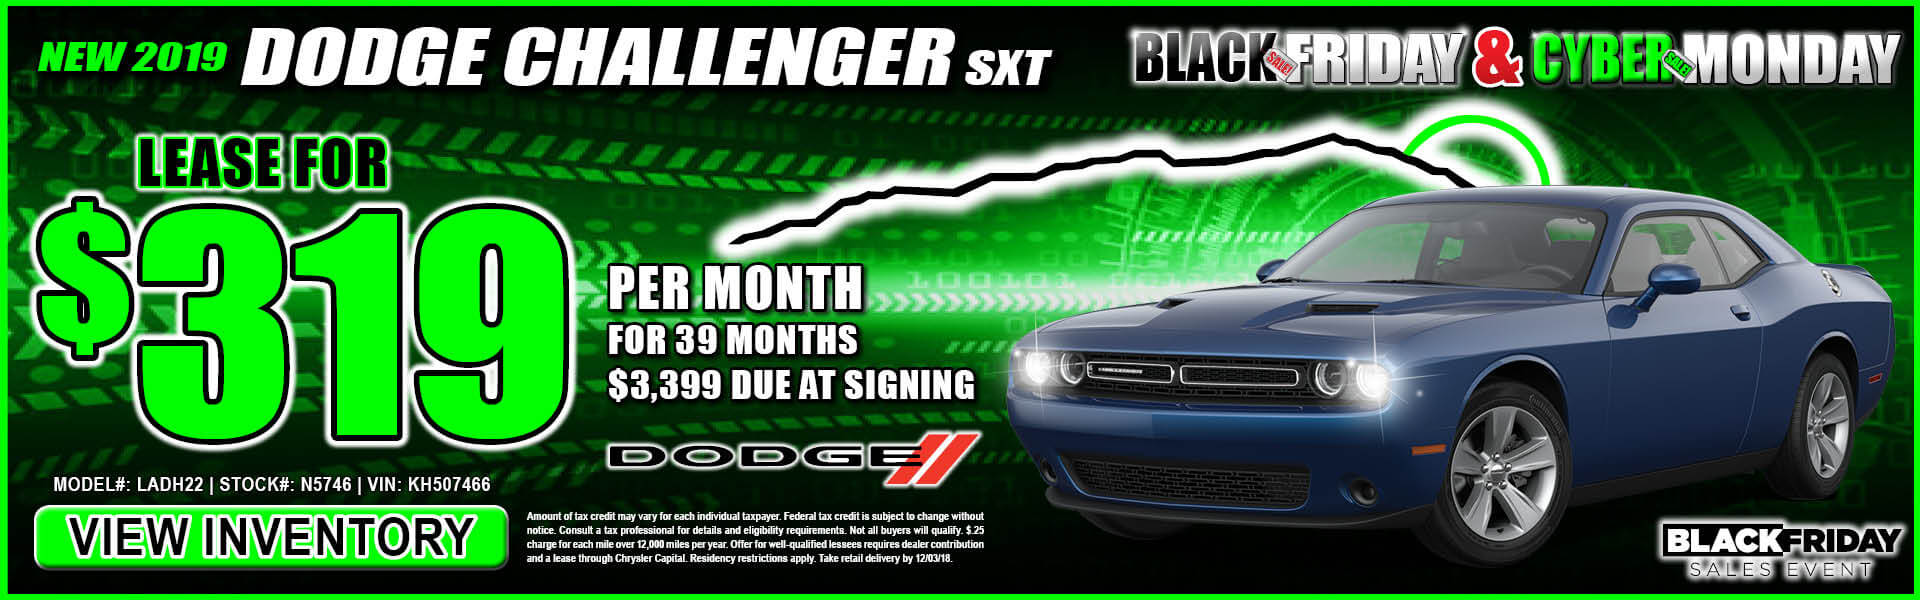 Dodge Challenger $319 Lease